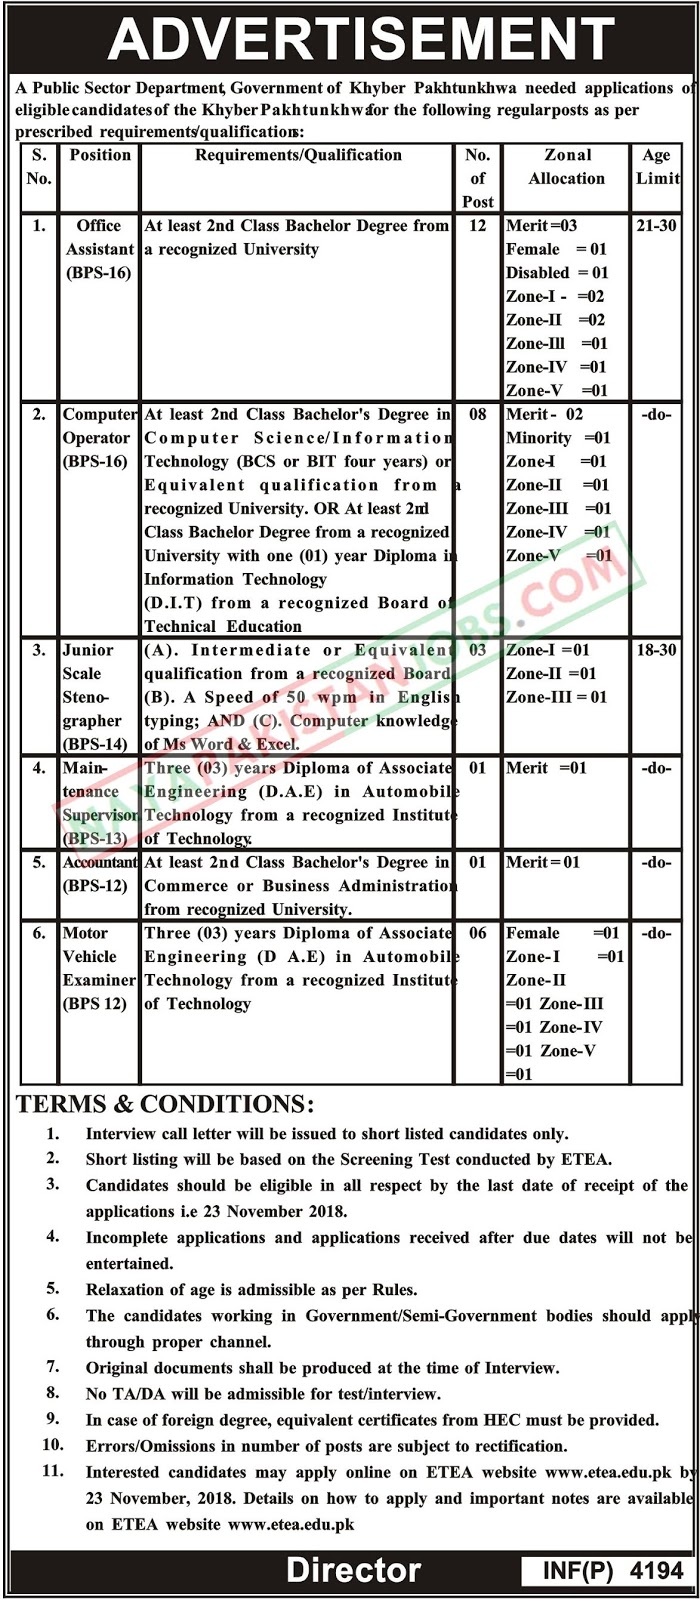 Latest Vacancies Announced in Public Sector Organization Khyber Pakhtunkhwa via ETEA 2 November 2018 - Naya Pakistan